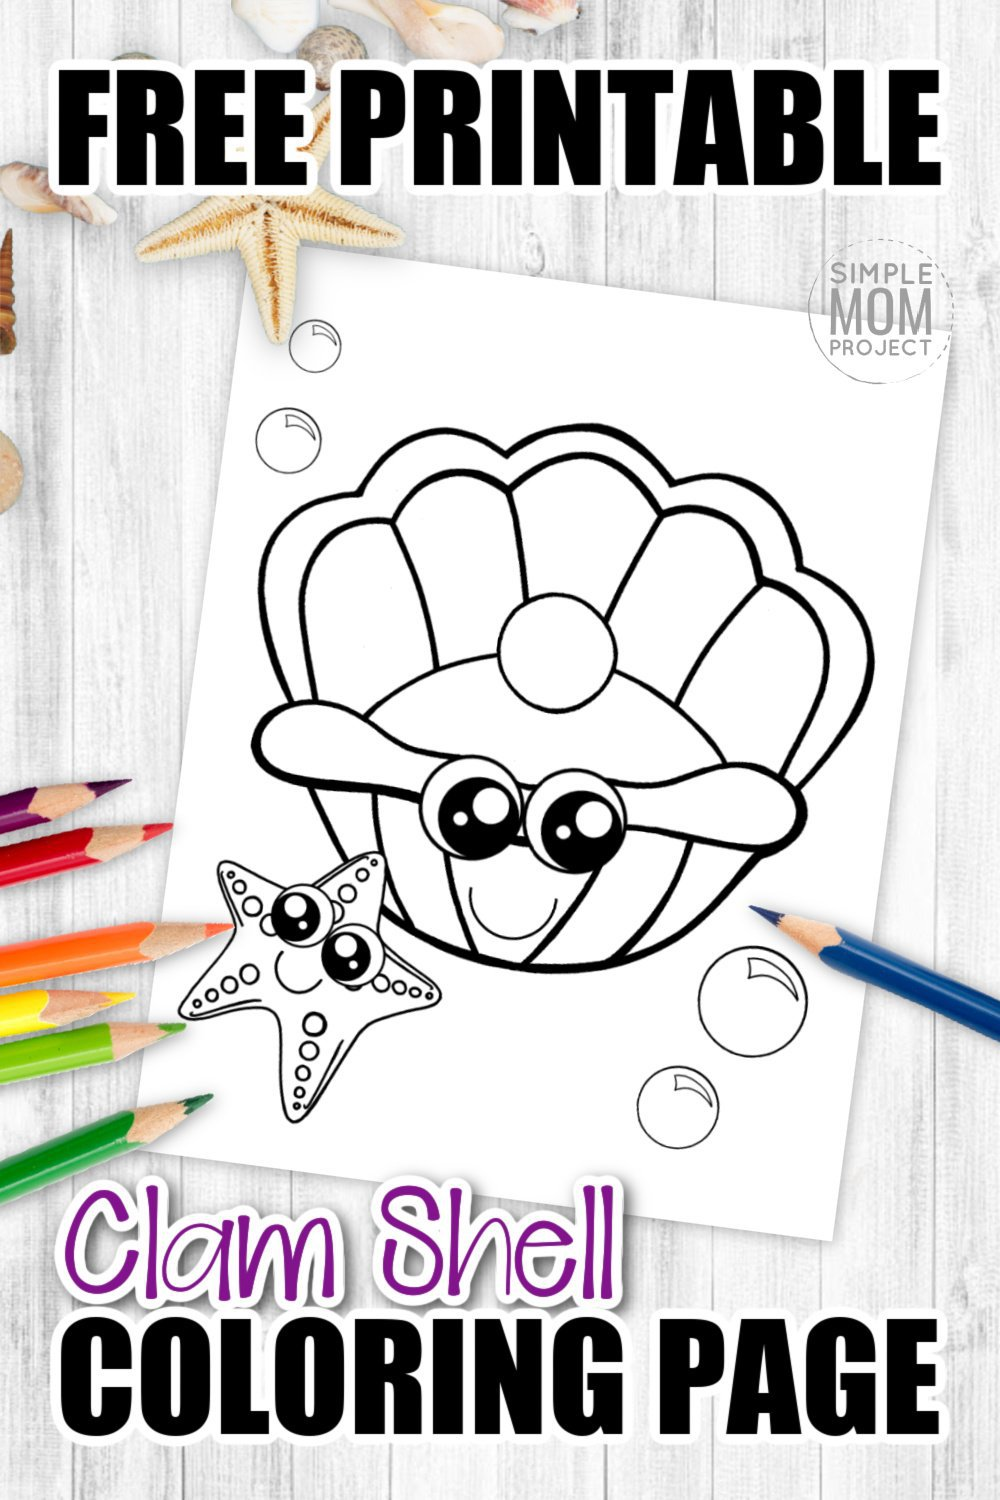 There's something special about the pearl inside of a giant clam. Click now to add this cute clam clip art coloring page to your ocean animal collection. Color the soft seashell purple, pink or whatever color your heart desires. Kids of all ages including preschoolers and toddlers will be lined up at the printer to get their copy of this free printable clam seashell coloring page! #seashellcoloringpage #clamcoloringpage #SimpleMomProject